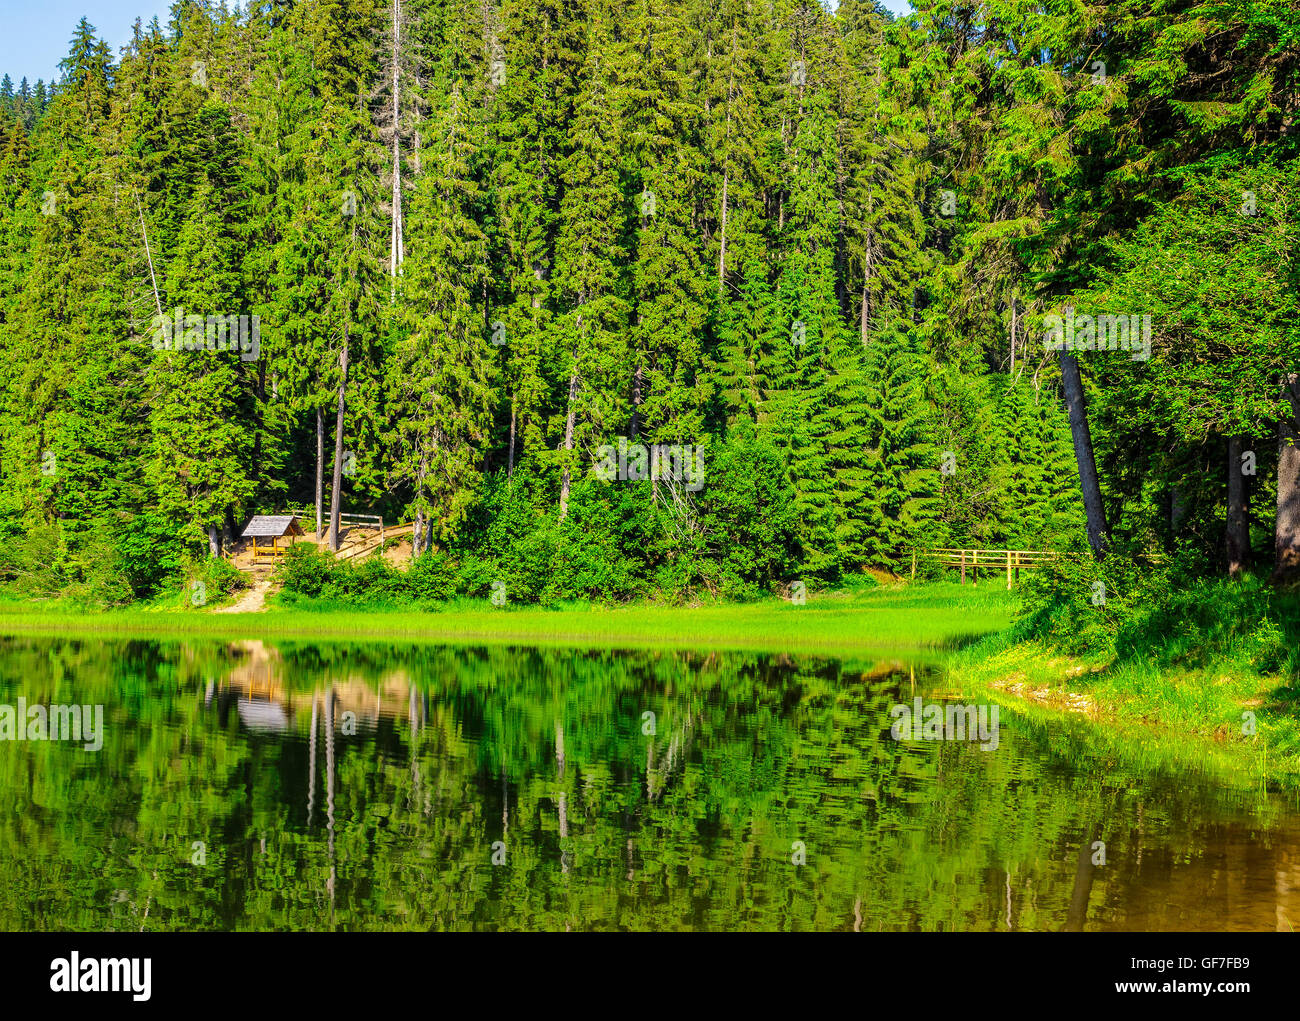 landscape near the lake among conifer forest  in the early summer morning - Stock Image